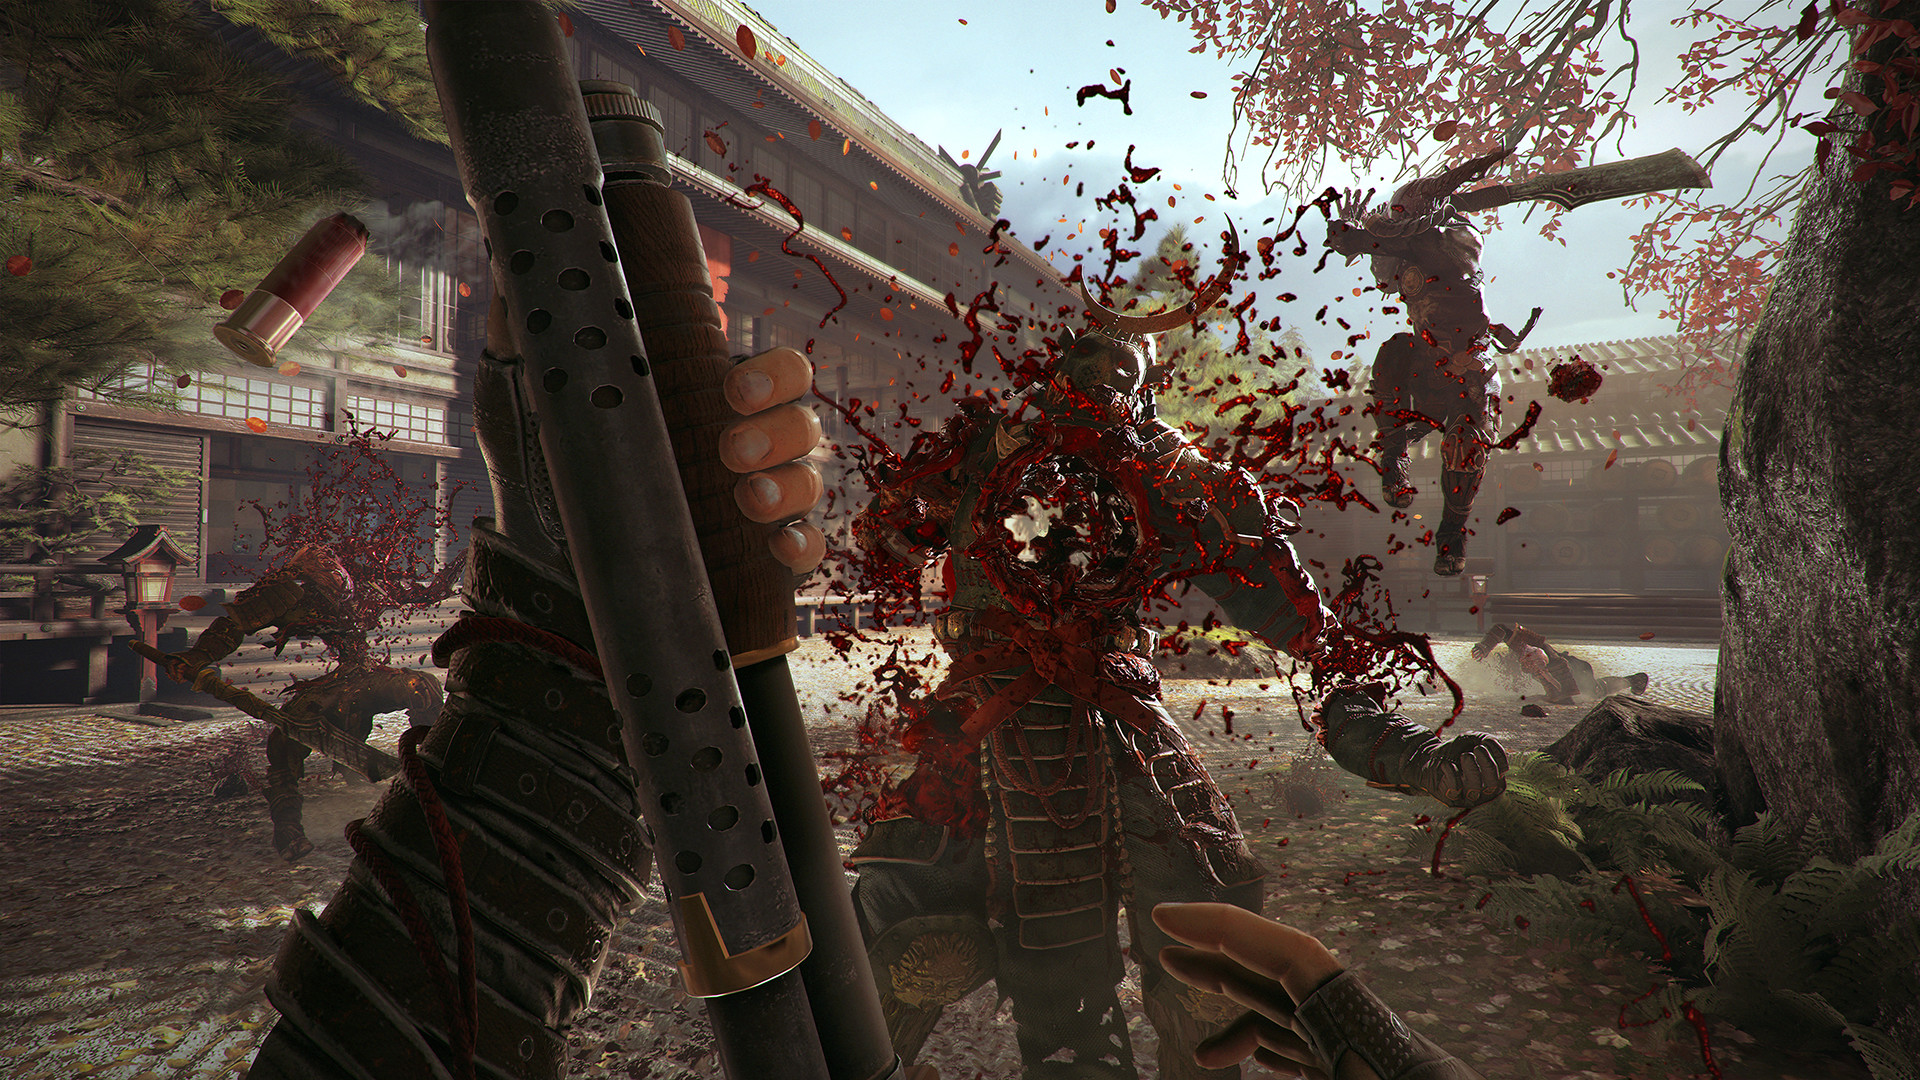 download shadow warrior 2 deluxe edition cracked by codex 3dm reloaded include all dlc and latest update mirrorace multiup